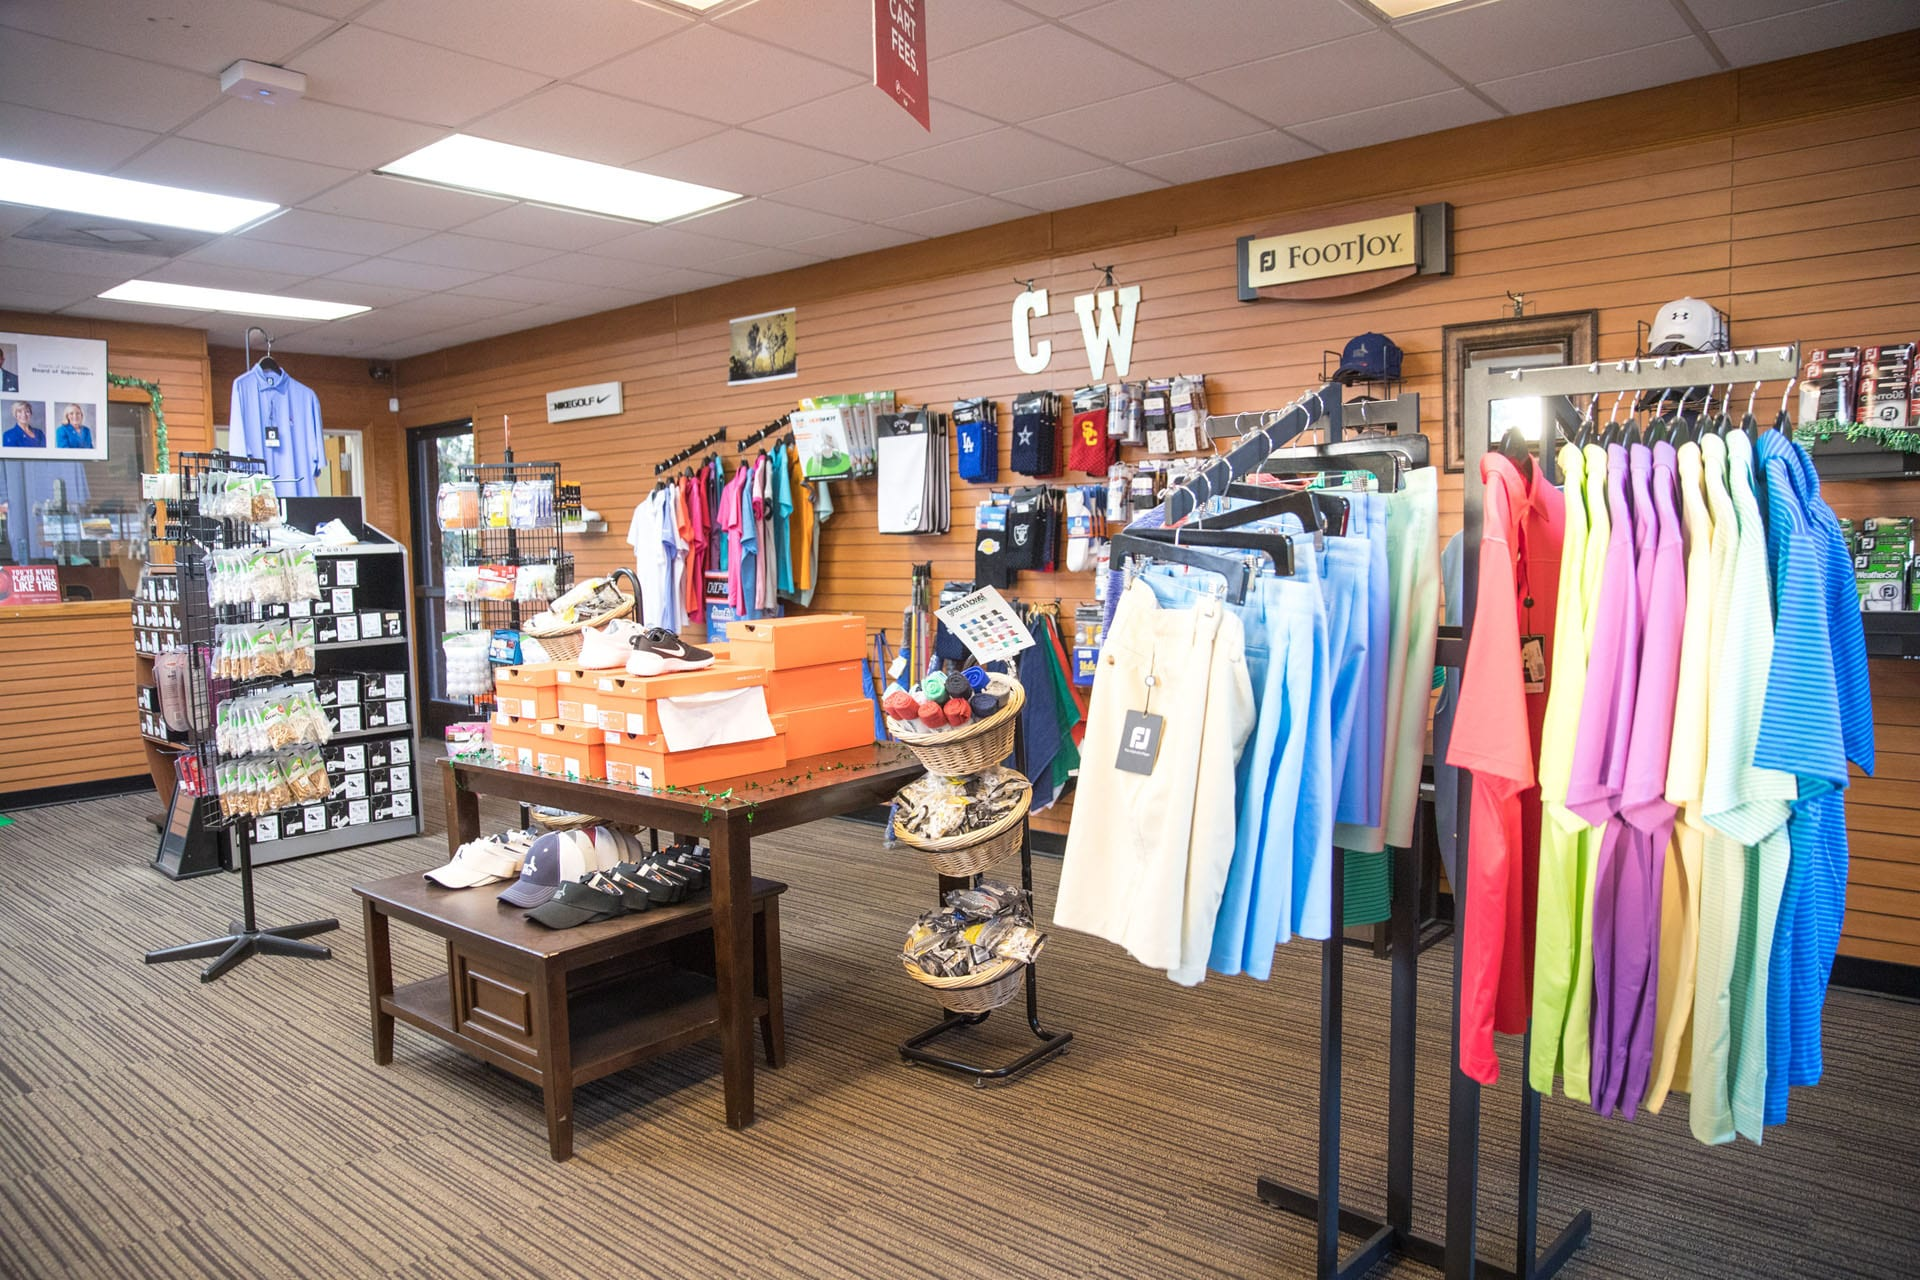 Chester Washington Golf Course pro shop